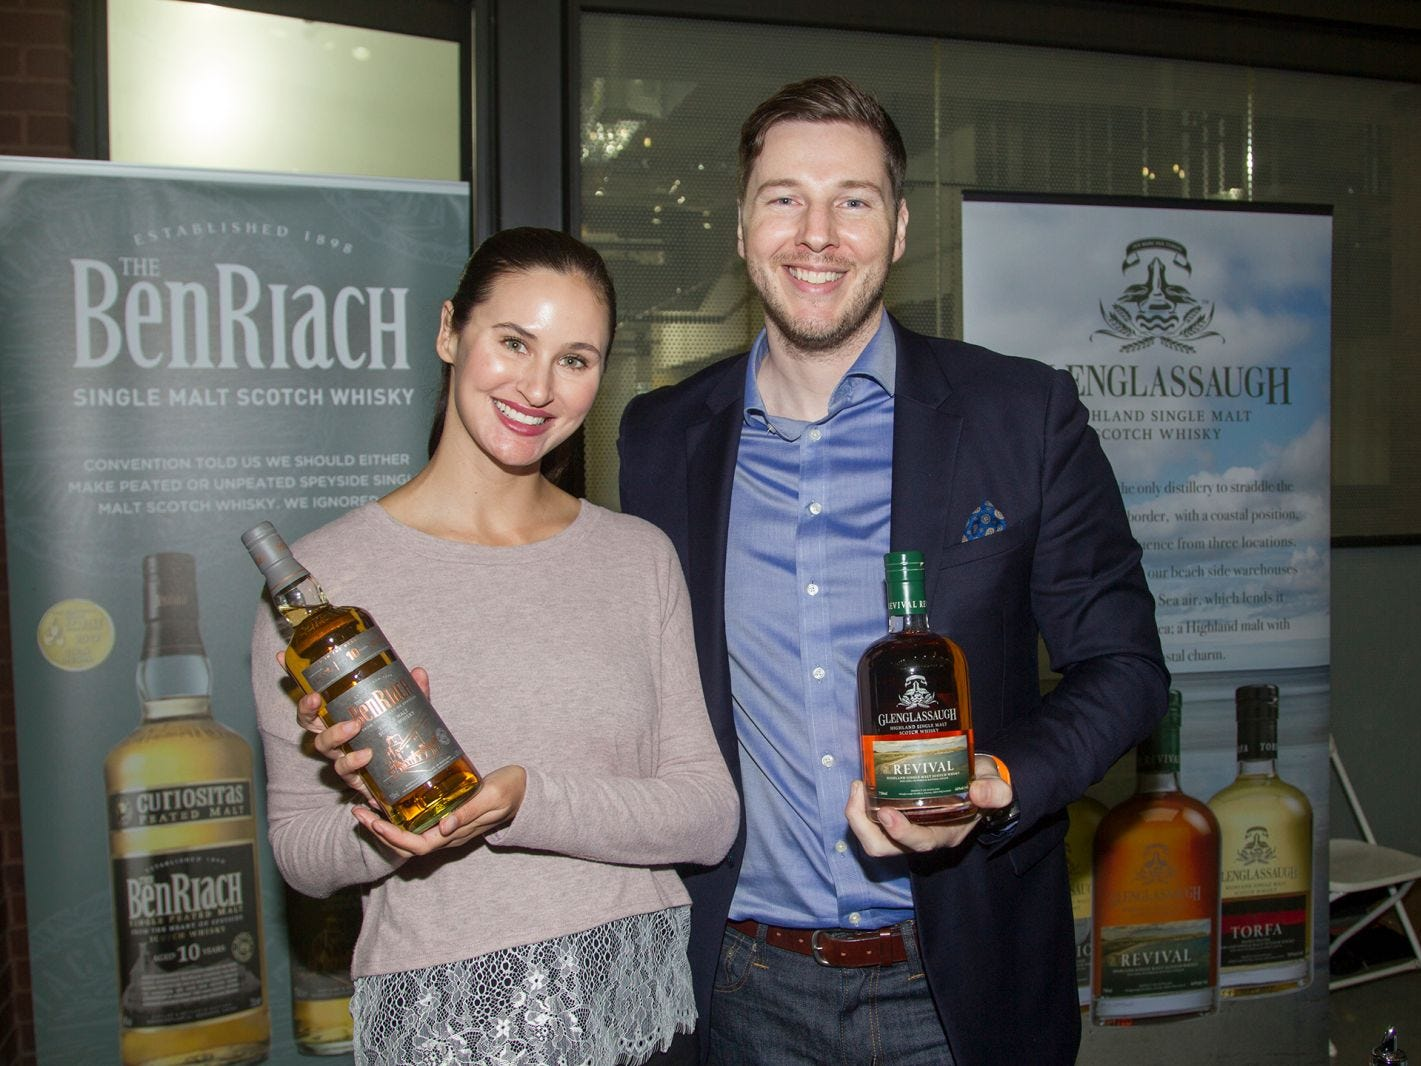 Katelyn, Greg. Jersey City Craft Distillery Fest at the Harborside Atrium featured more than 100 styles of spirits. Guests had the chance to taste craft-distilled spirits from moonshine, rum, cognac, whiskey, vodka, gin, tequila and more. 09/08/2018